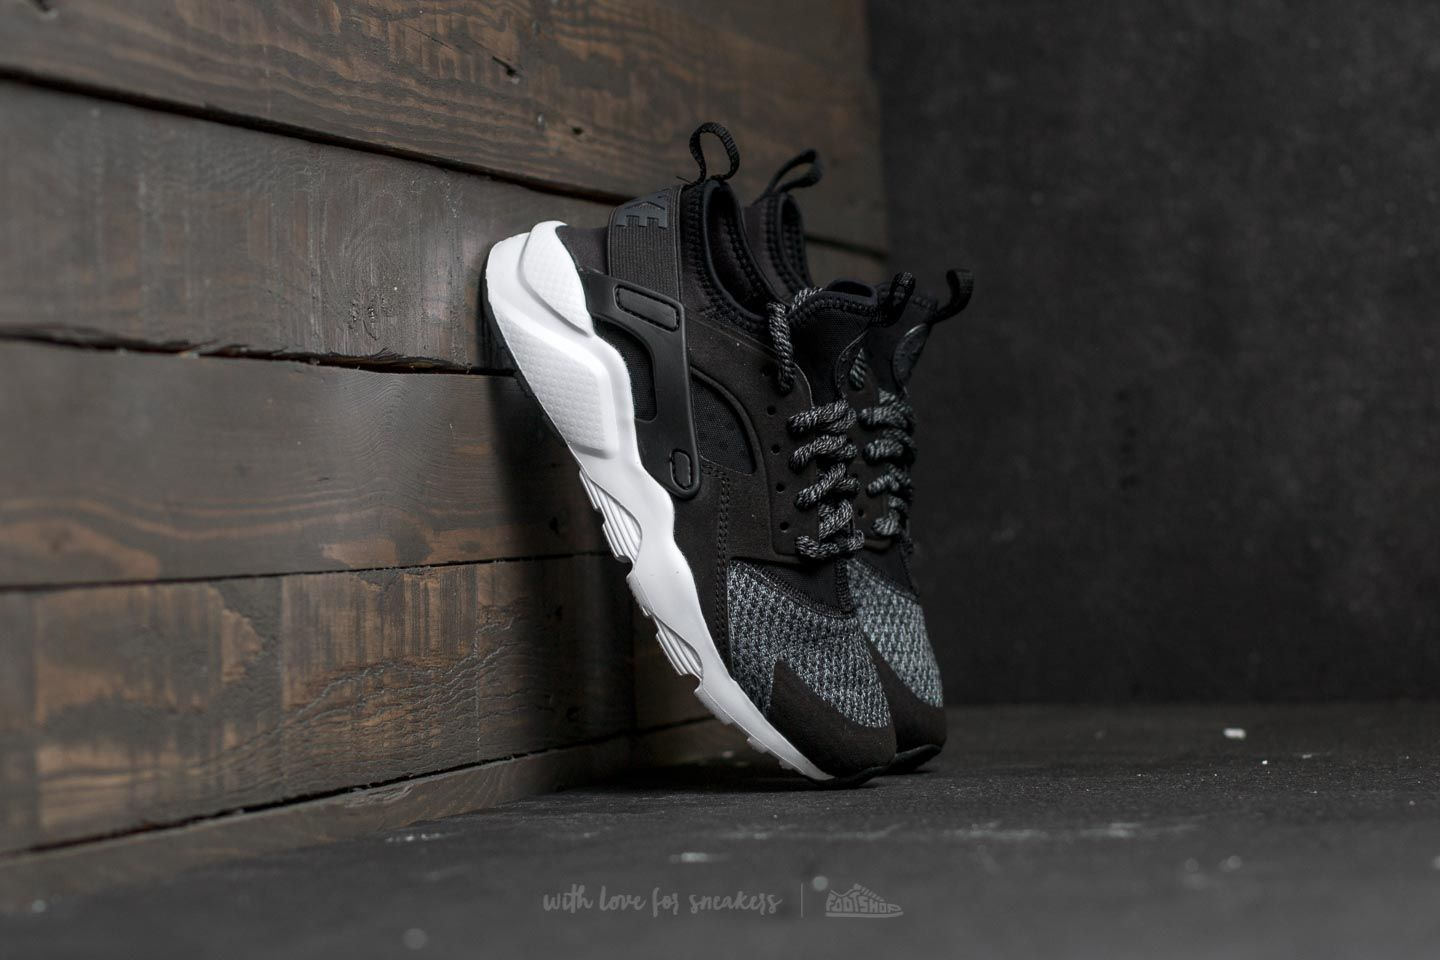 d423941e9c203 Nike Air Huarache Run Ultra SE (GS) Black  Black-Anthracite